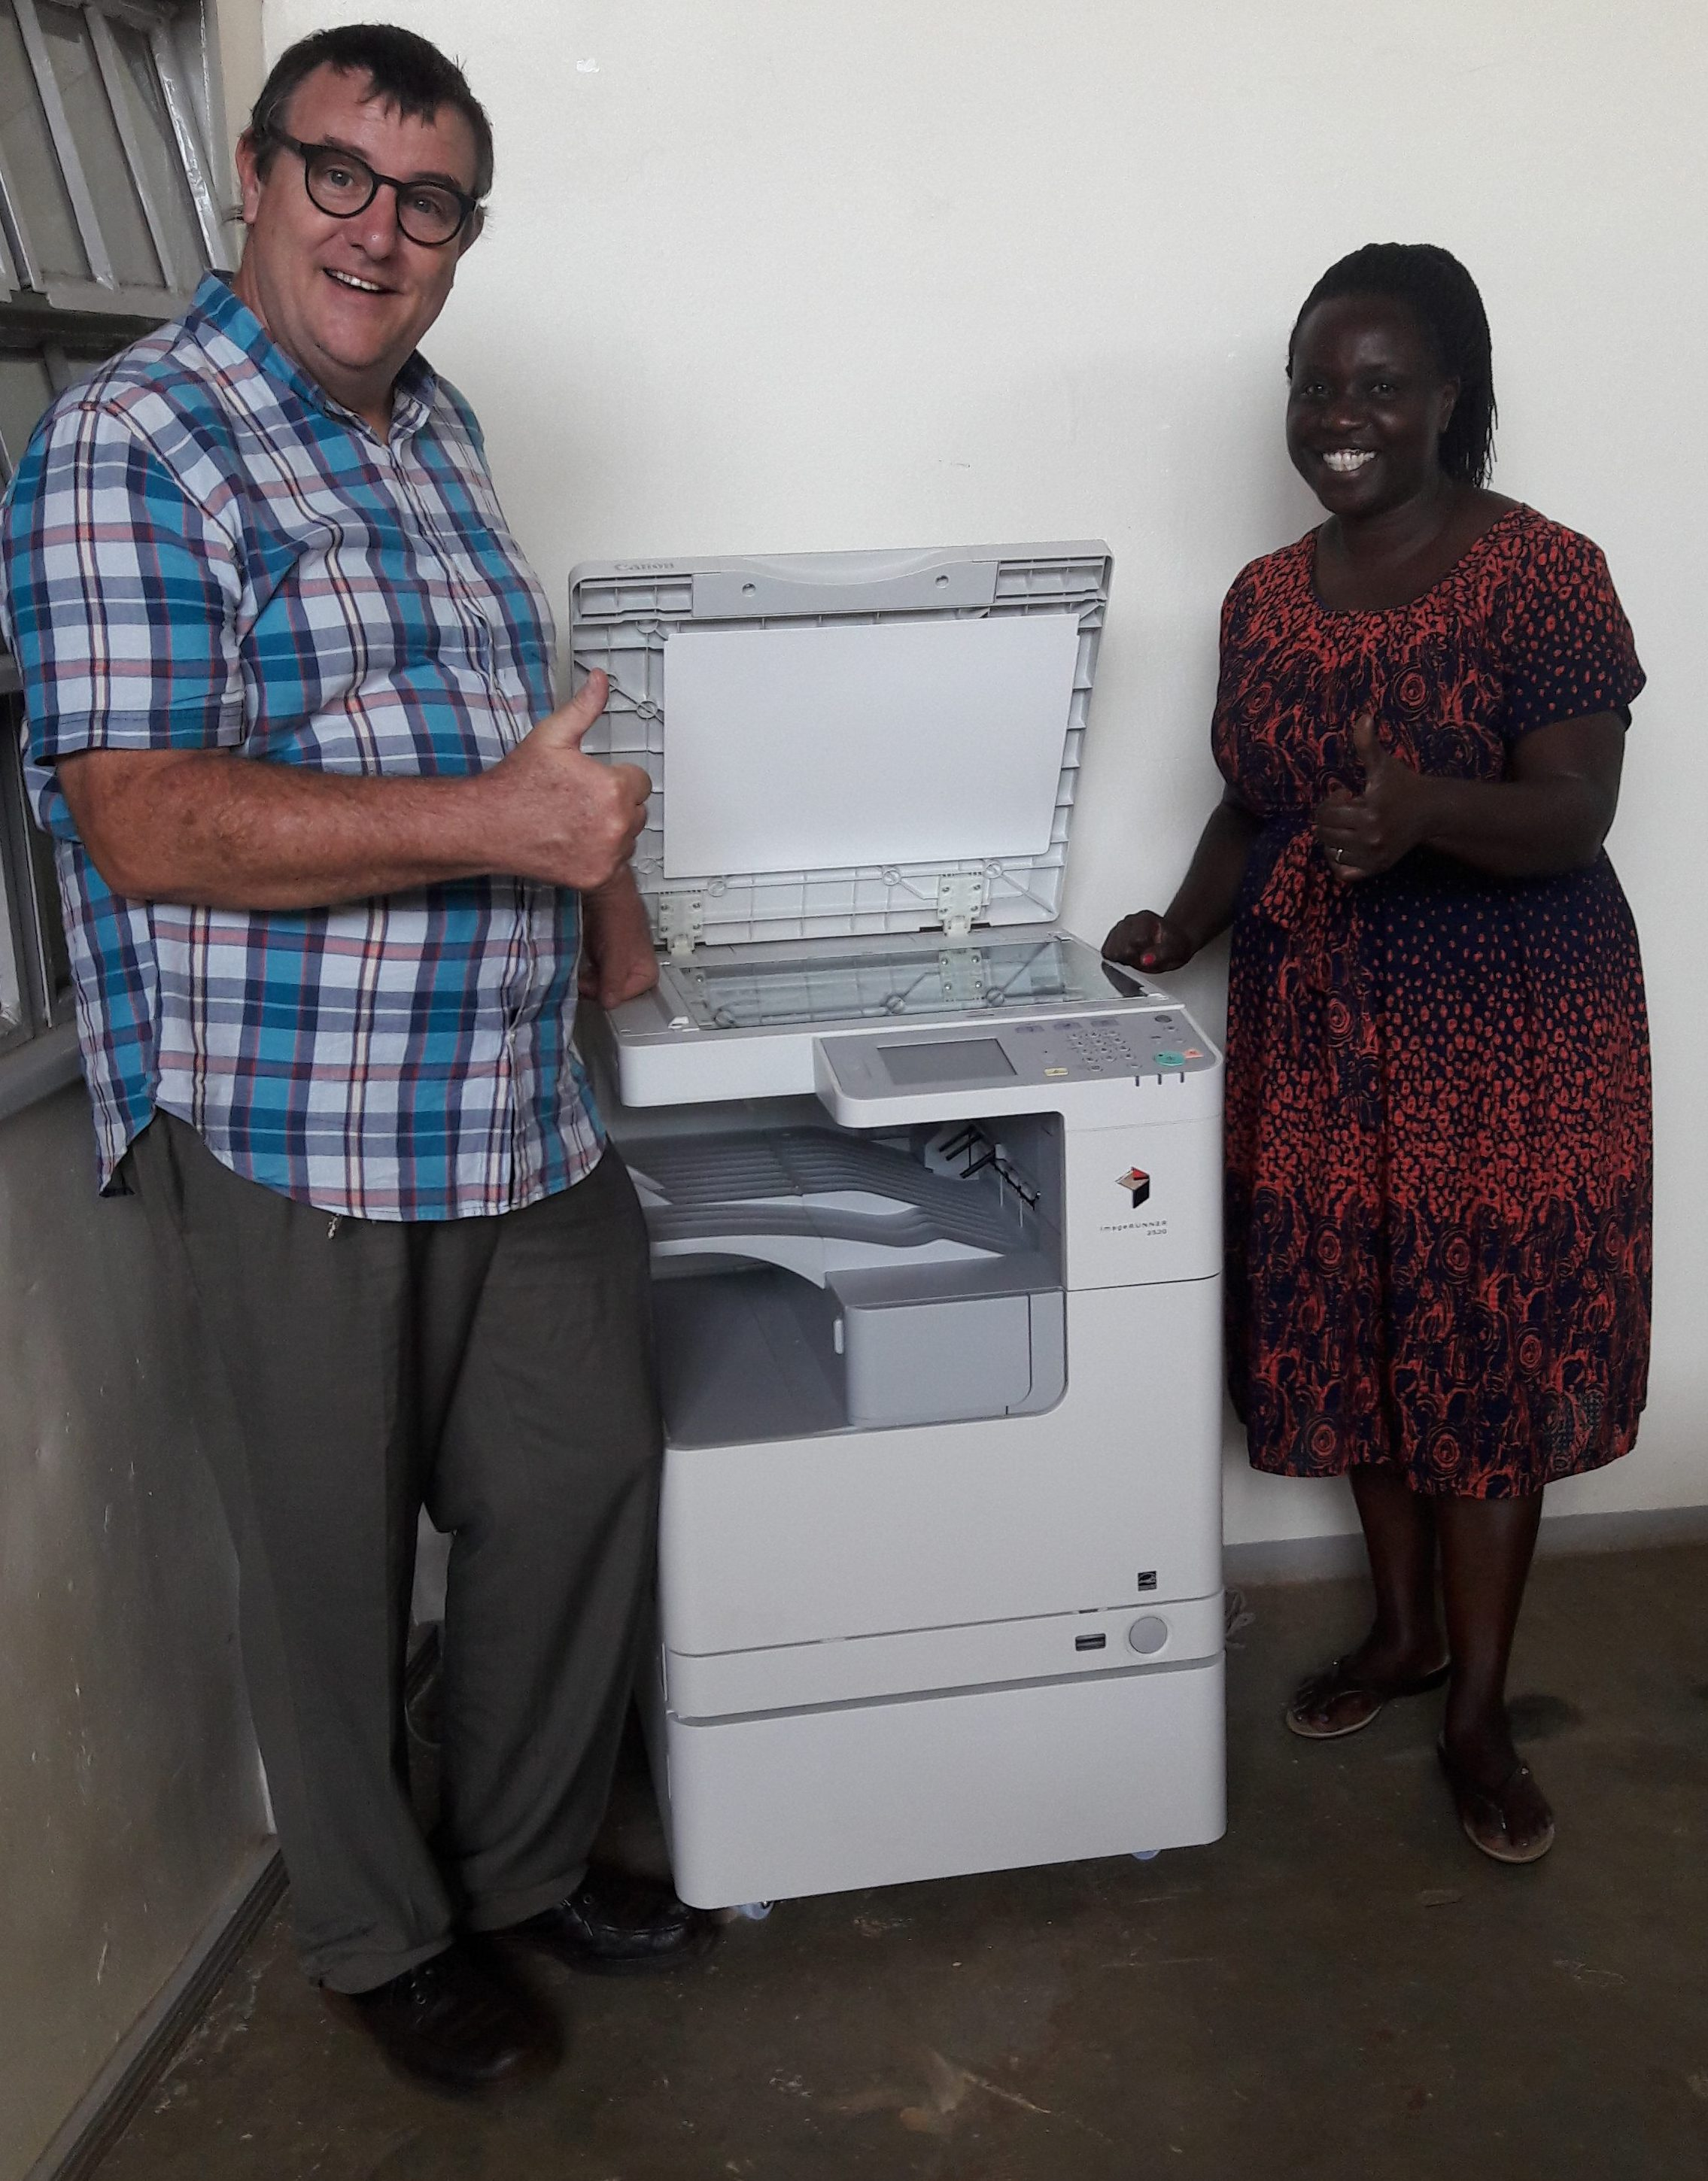 Our new Photocopier